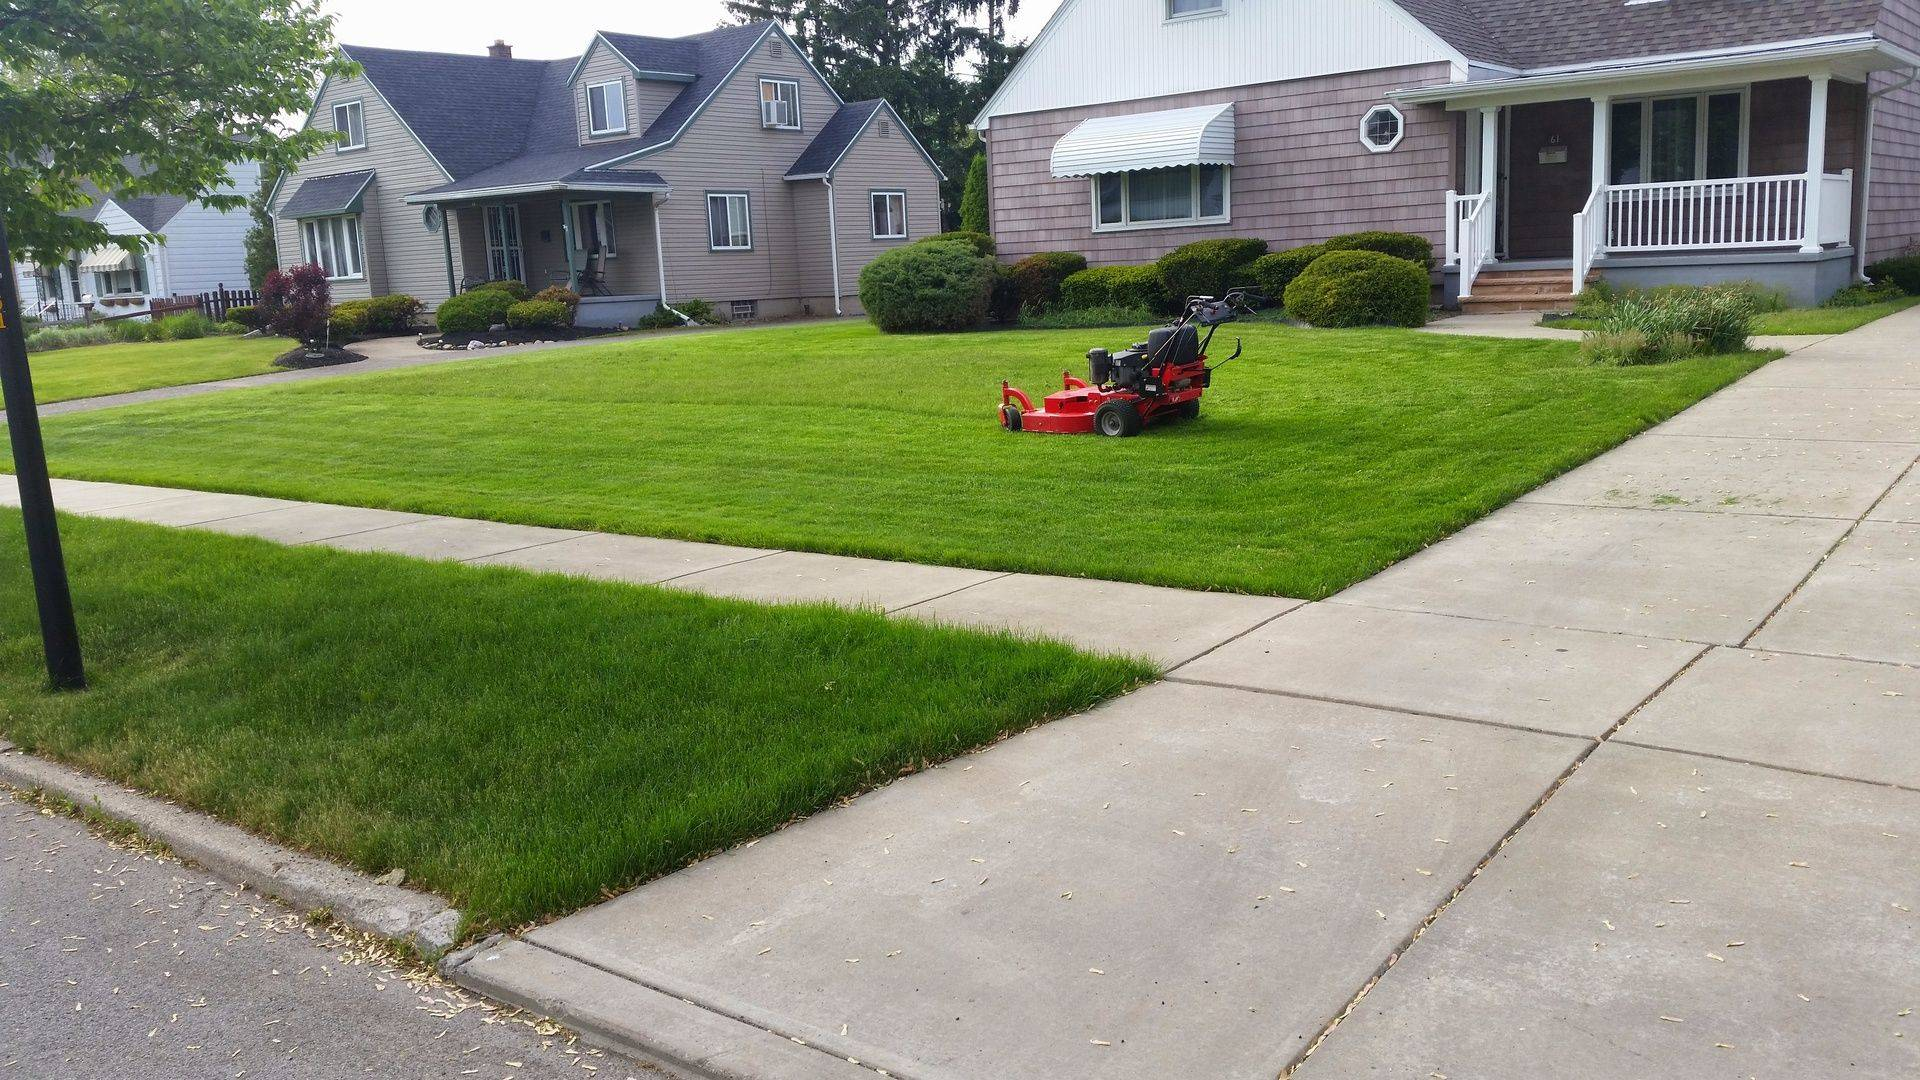 lawn cutting Yard Barber Lawn Service LLC